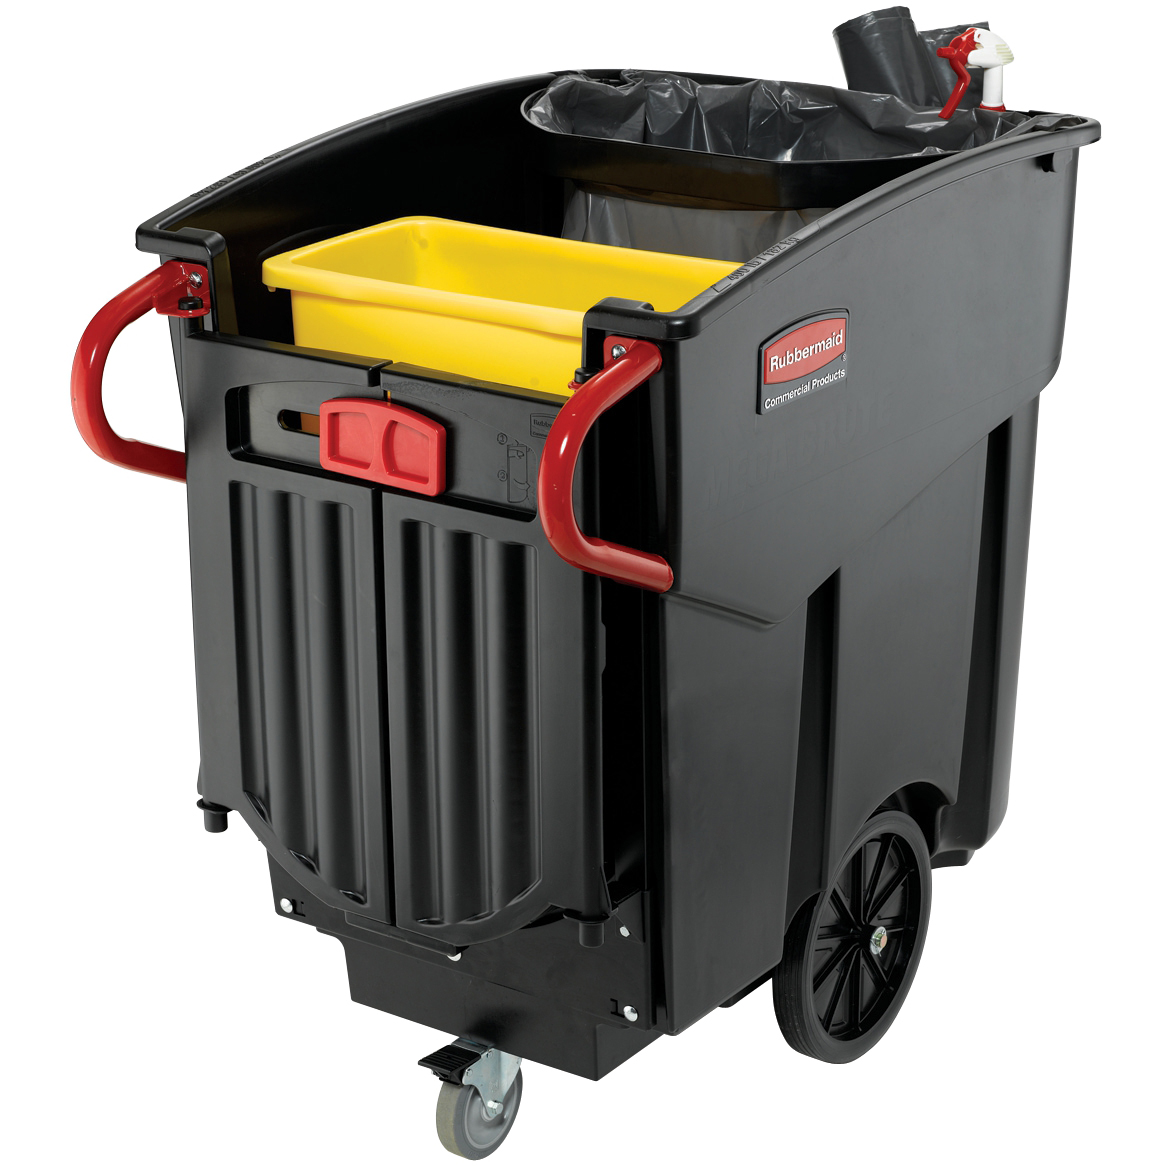 Rubbermaid Mega Brute Mobile Waste Collector 450 Litre Black 9W71-00-BLA